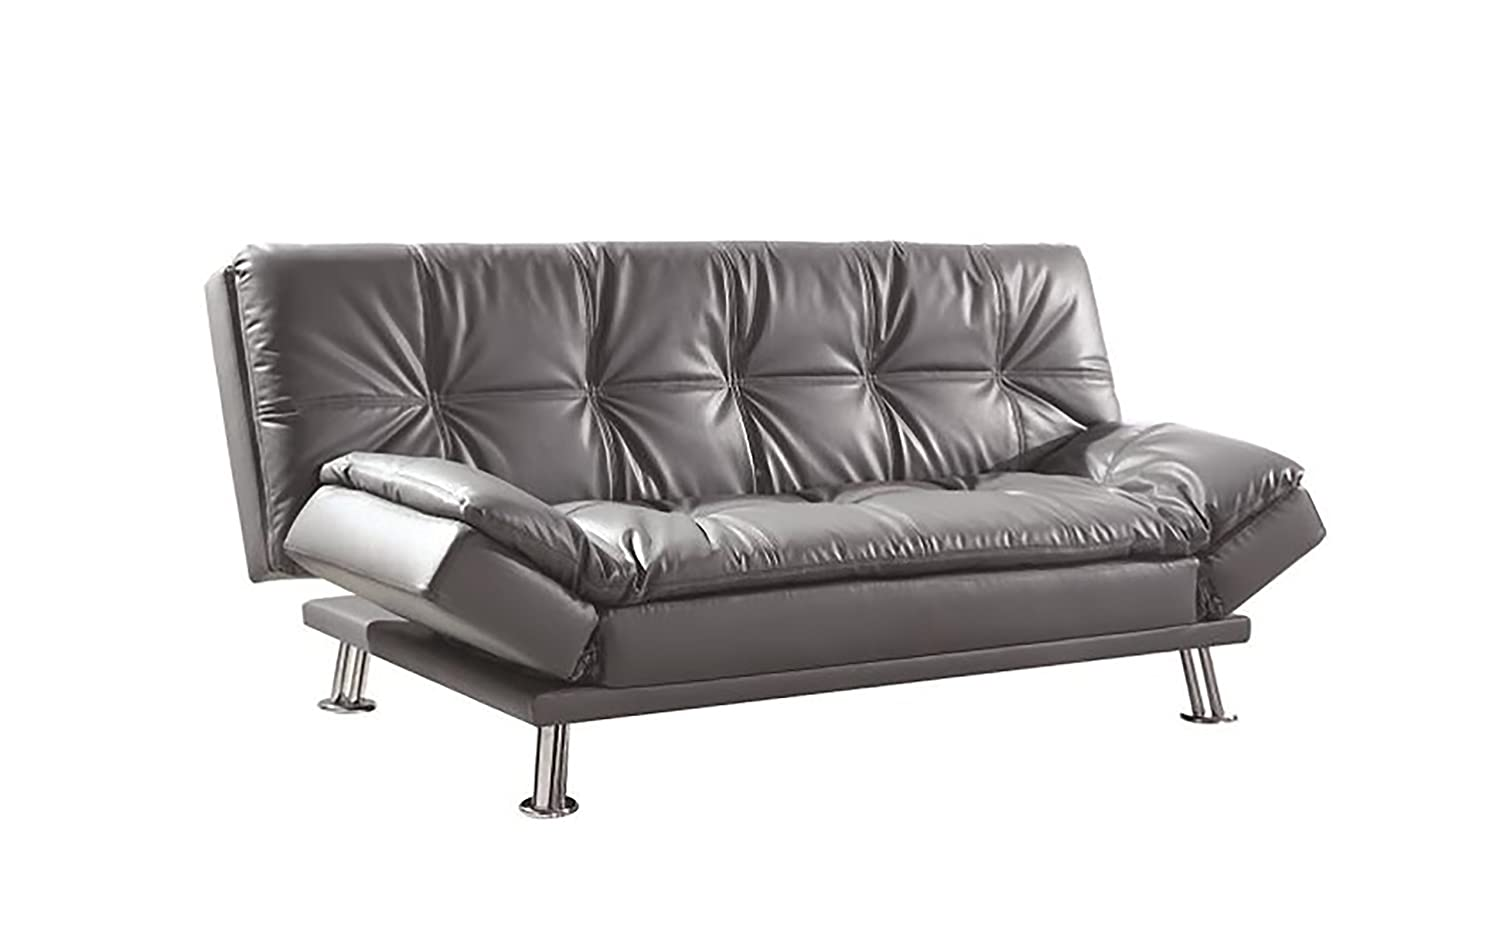 Dilleston Sofa Bed with Adjustable Armrests Grey